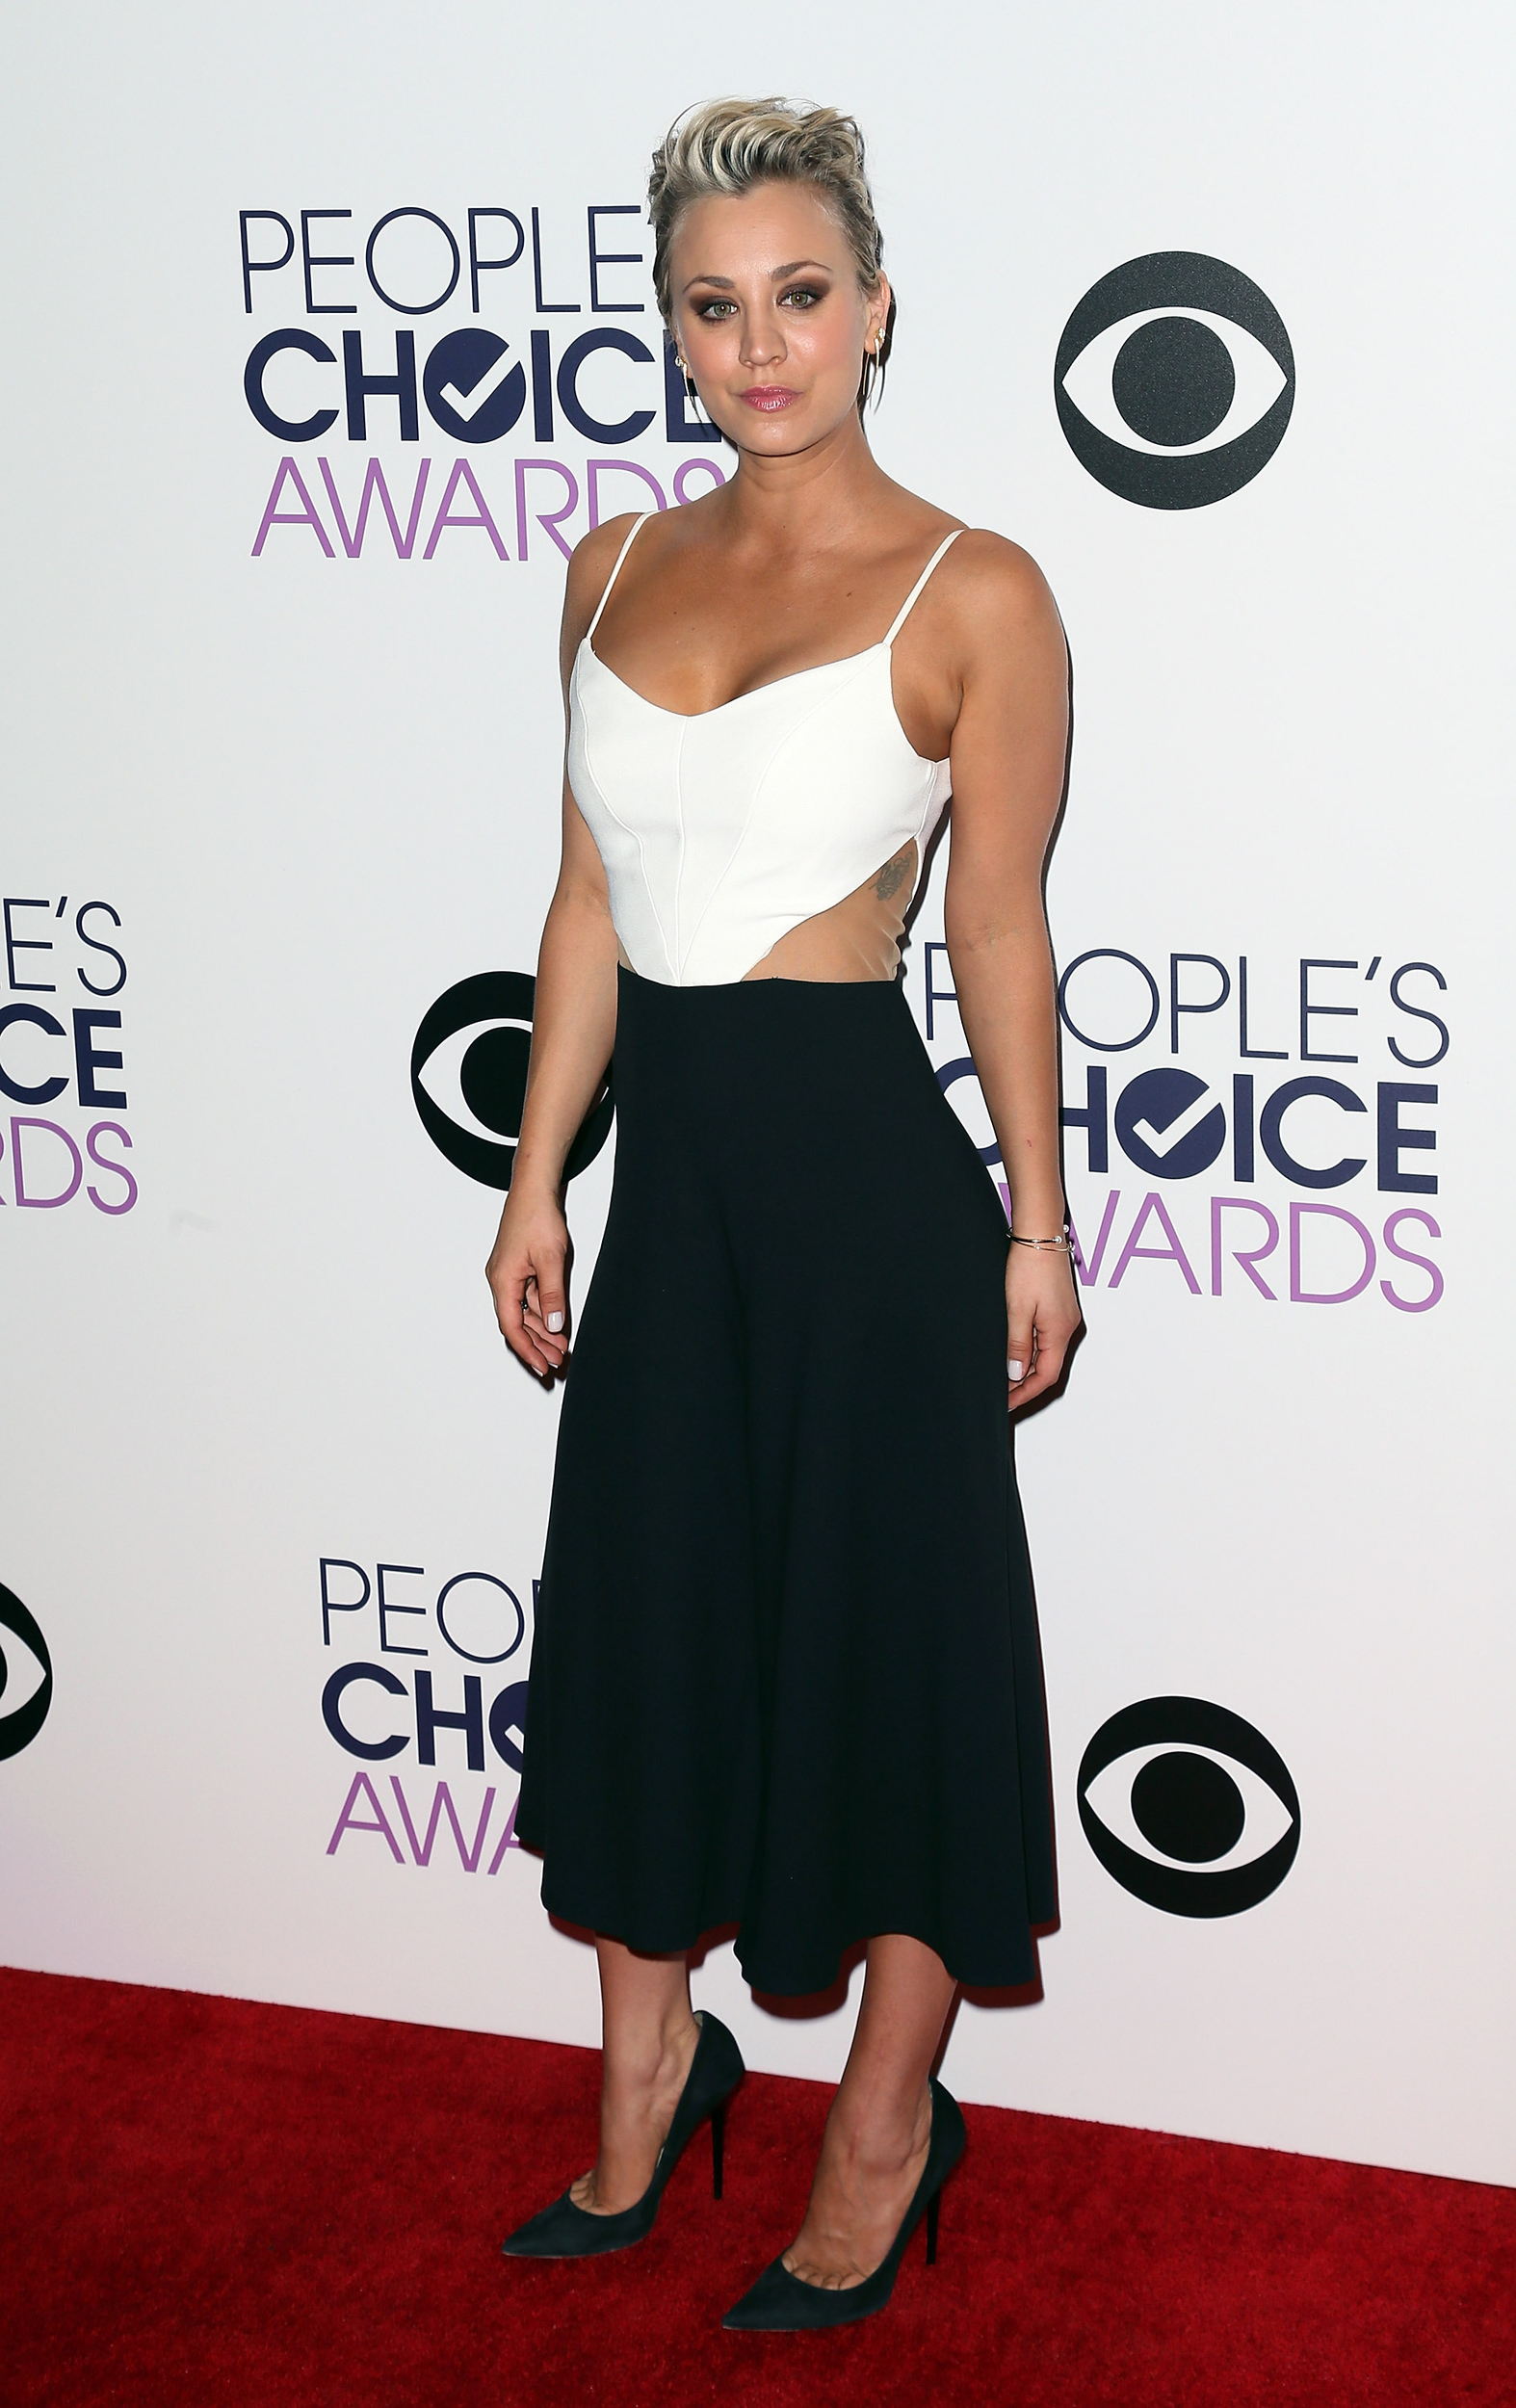 kaley cuoco peoples choice awards